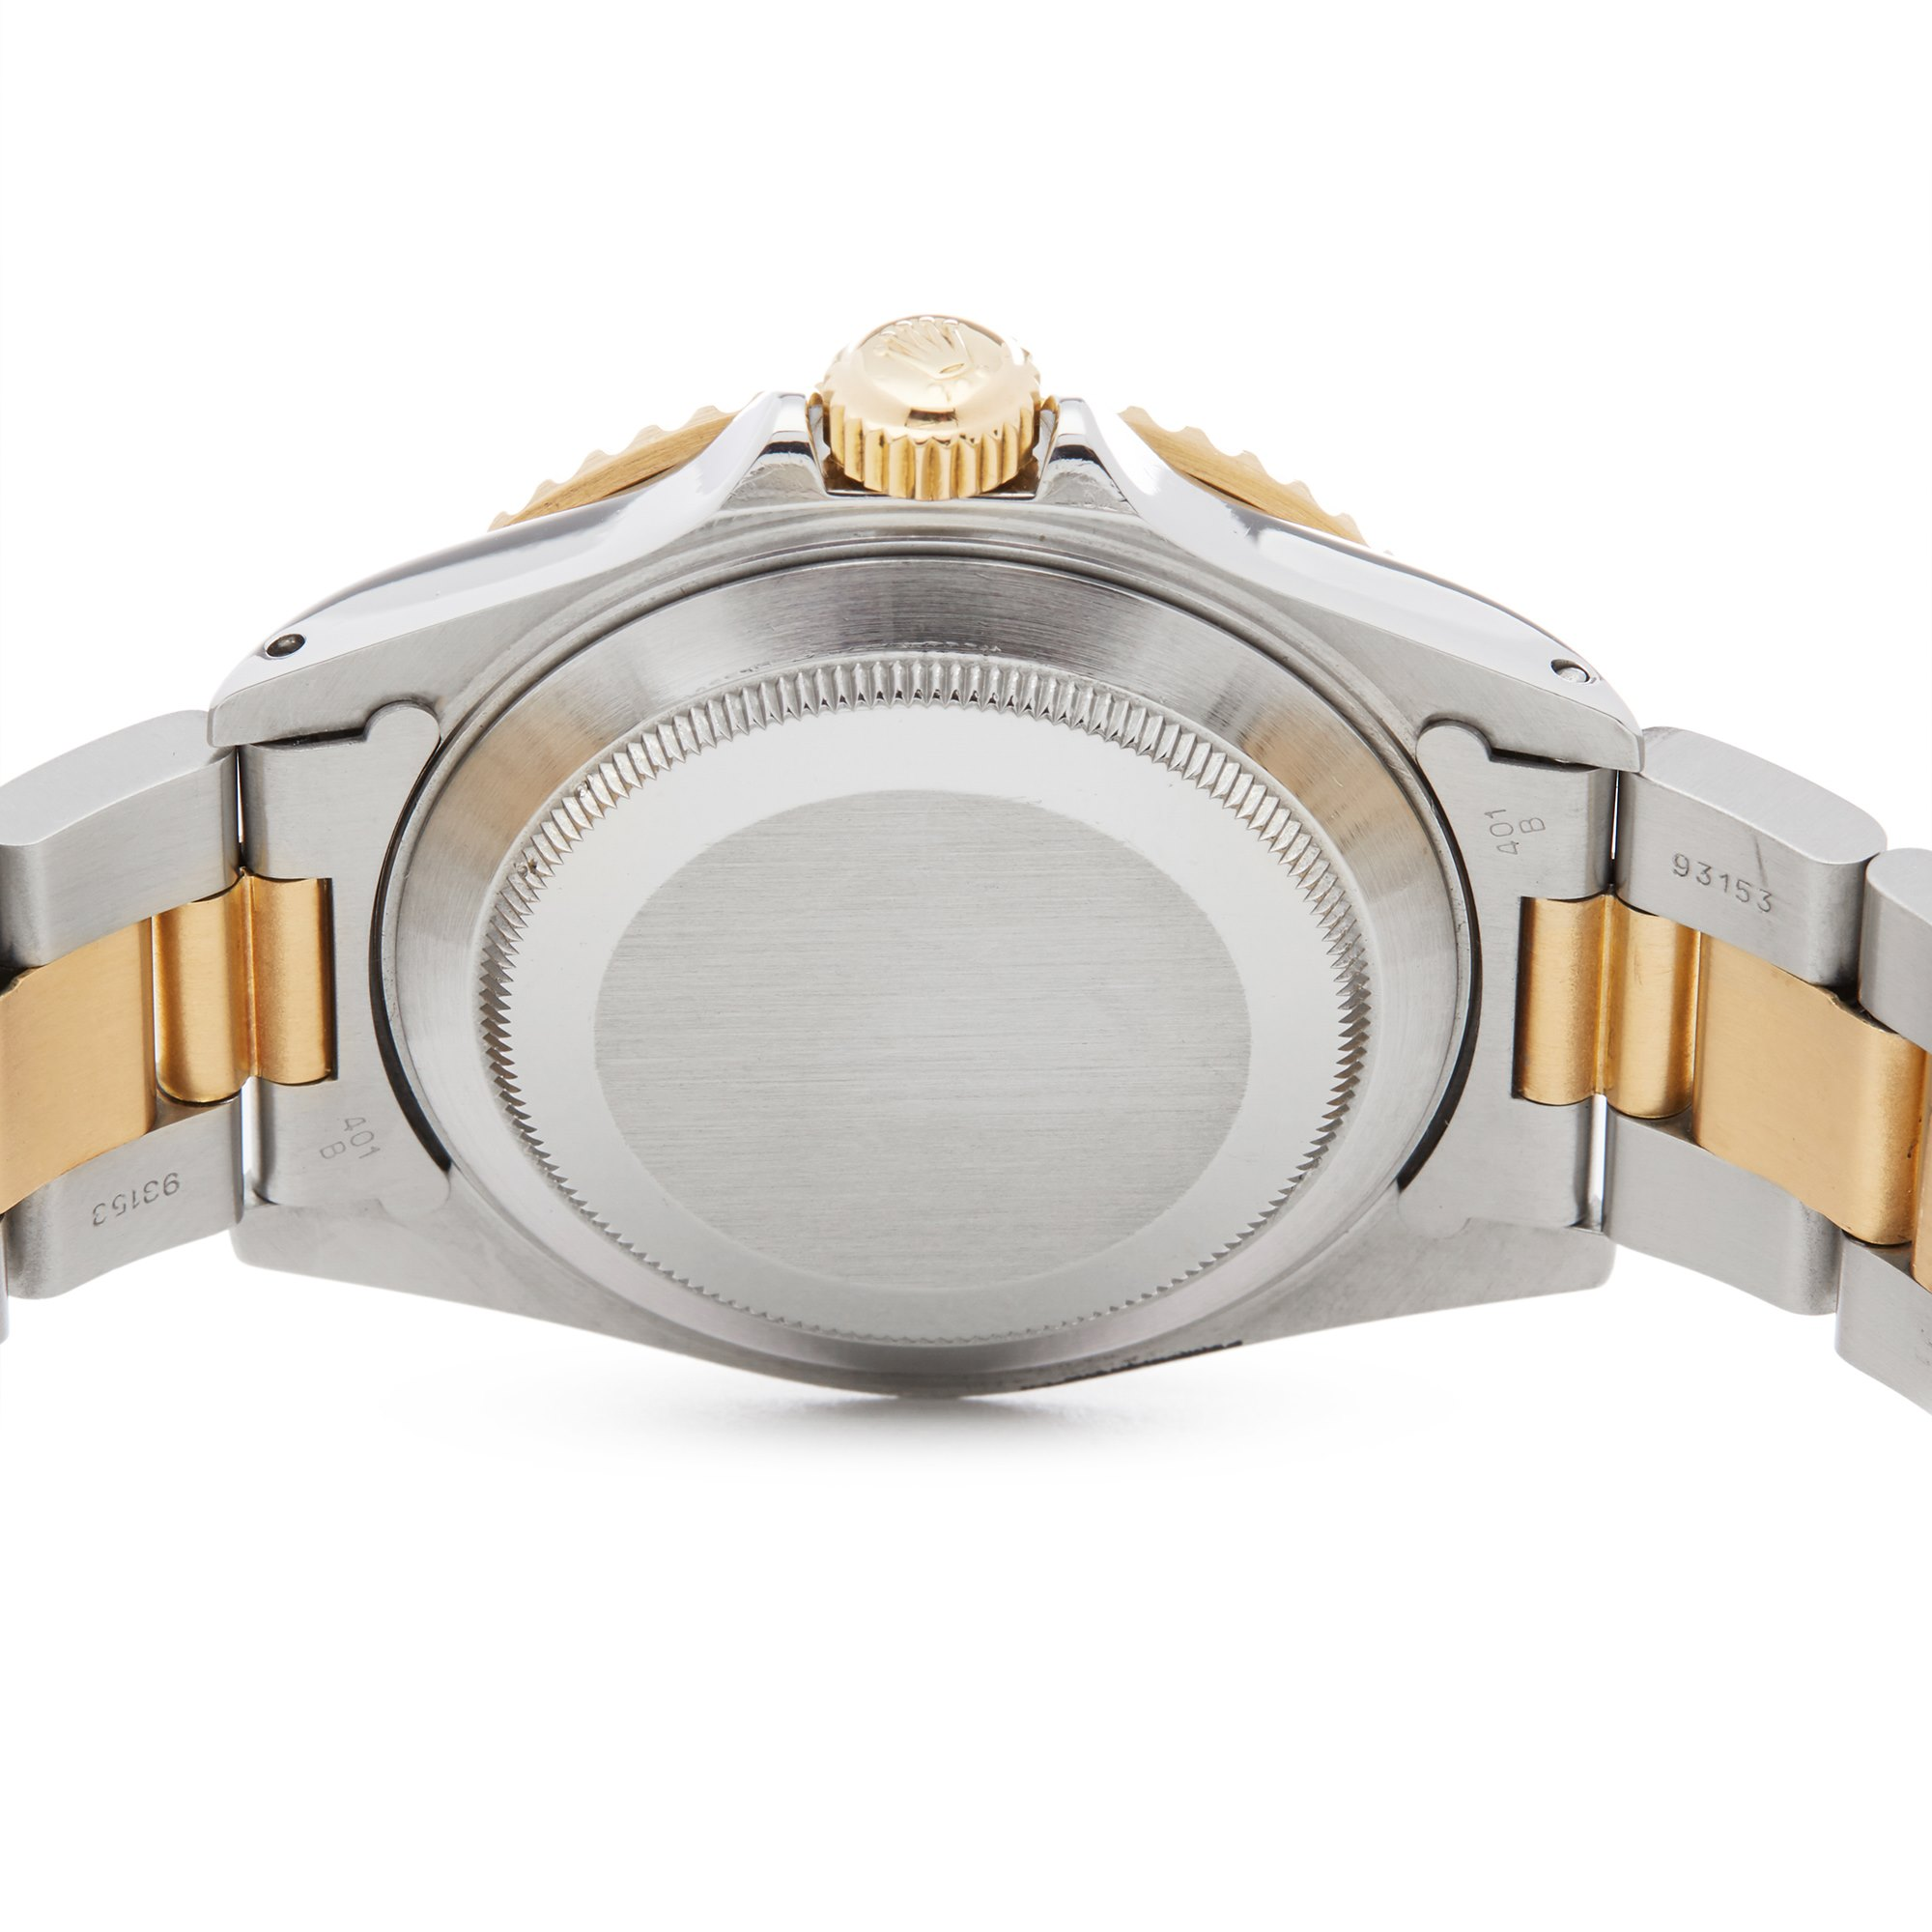 Rolex Submariner Date 16613 Men Stainless Steel & Yellow Gold Watch - Image 5 of 8